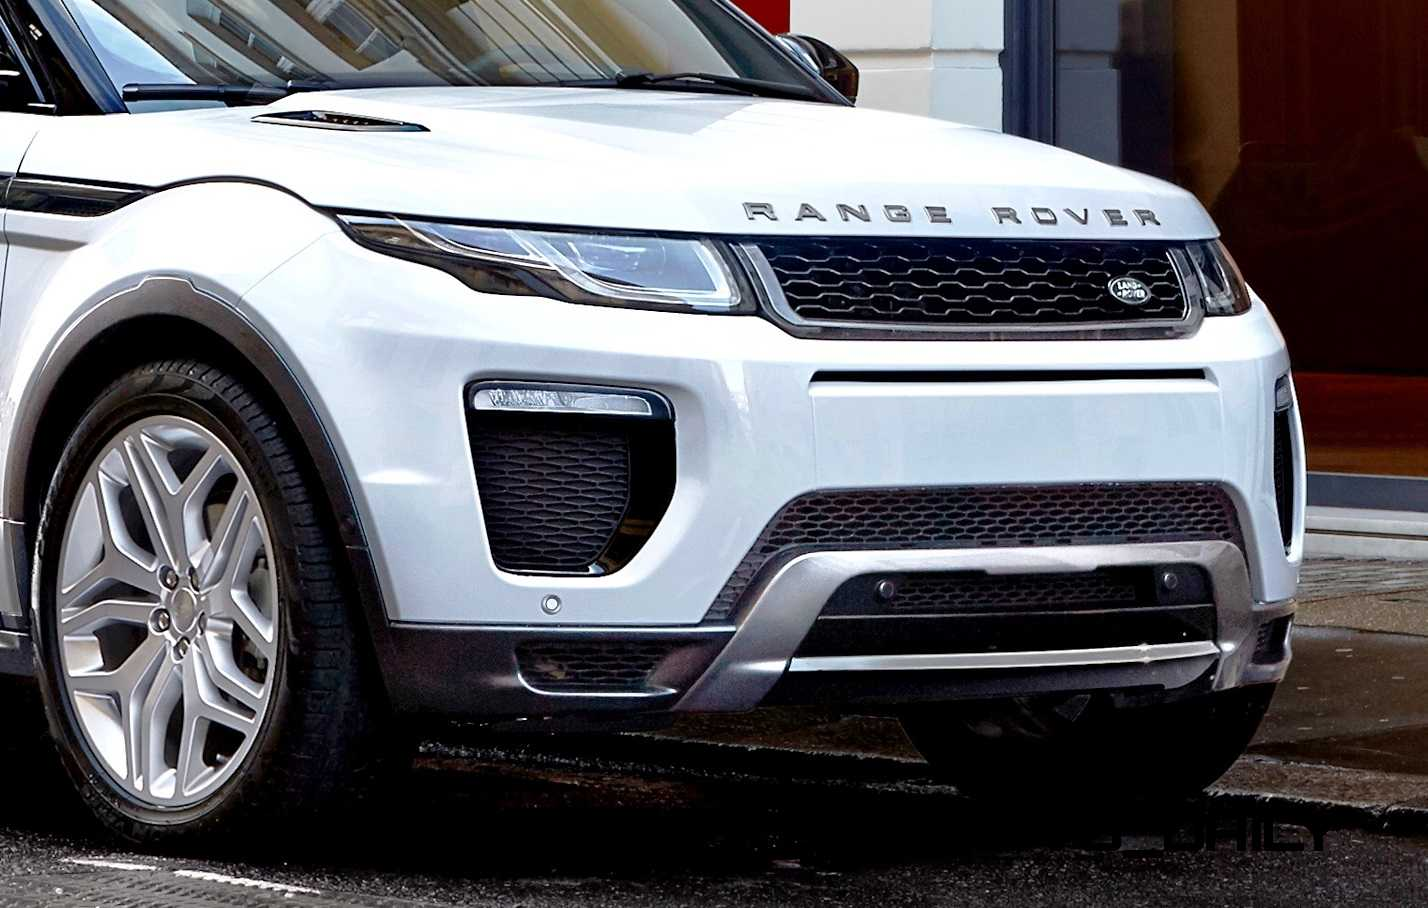 2016 range rover evoque 7. Black Bedroom Furniture Sets. Home Design Ideas